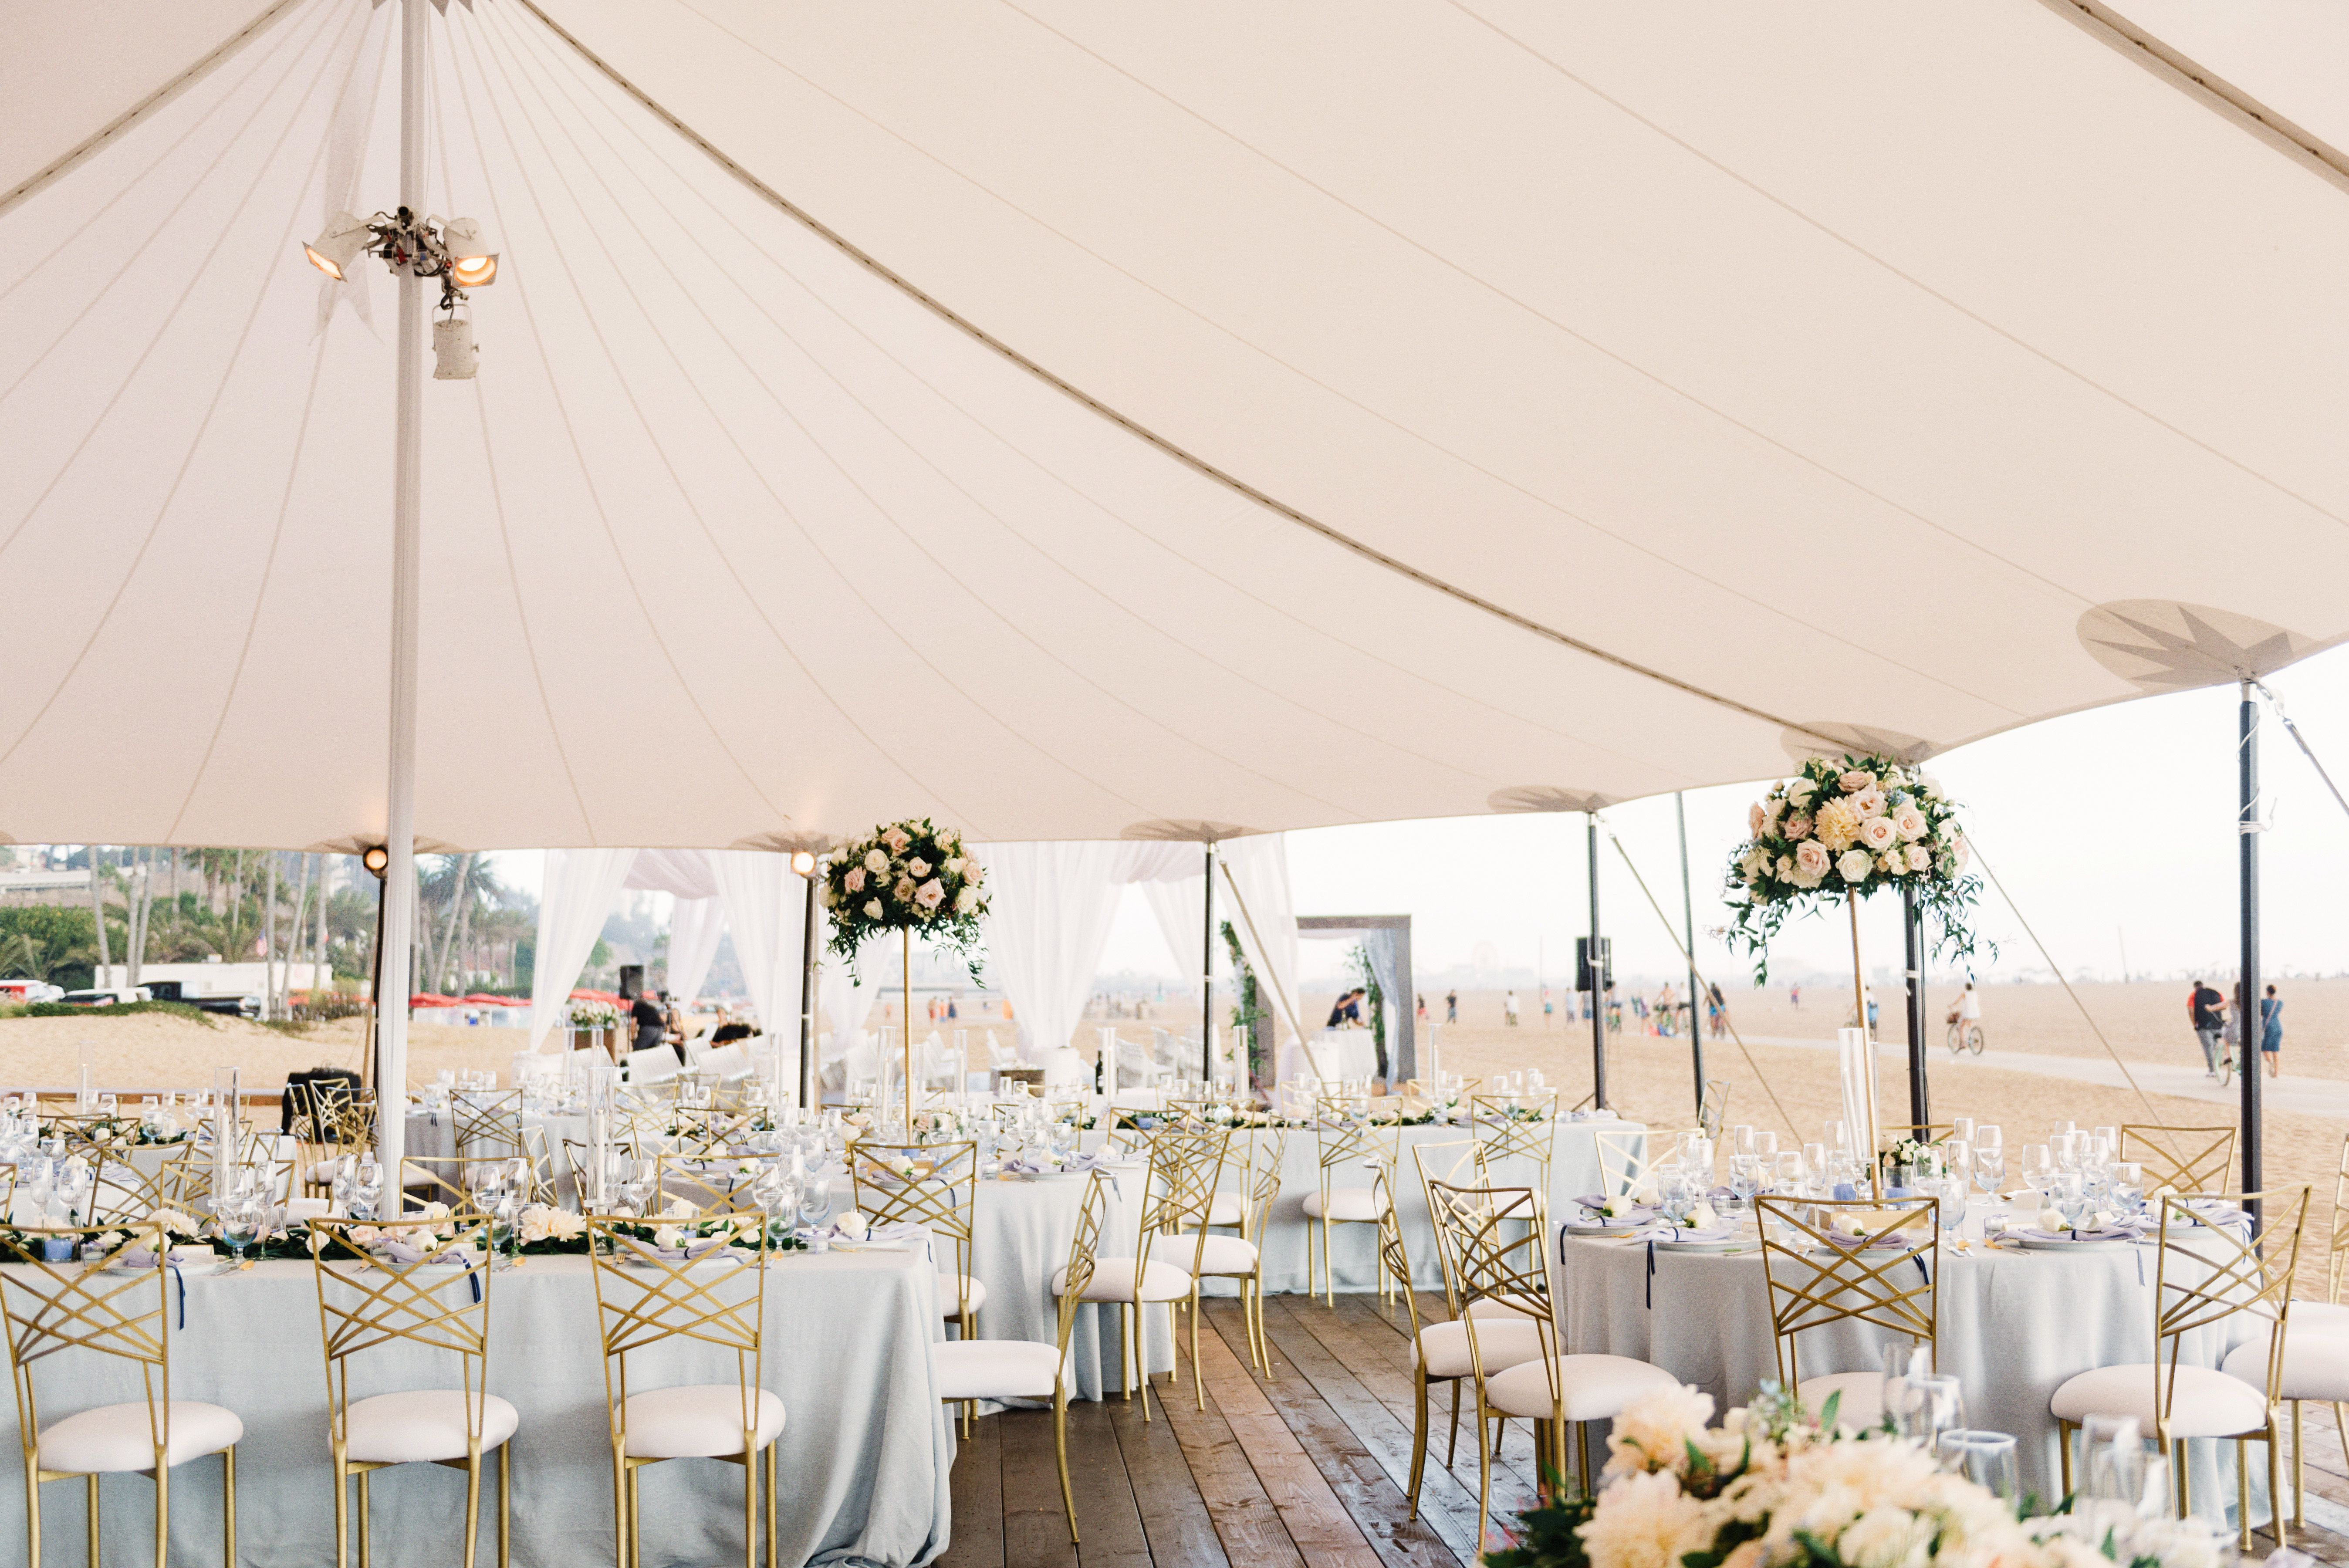 Wedding decorations rental  La Tavola Finen Linen Rental Tuscany Ocean with Tuscany Lilac